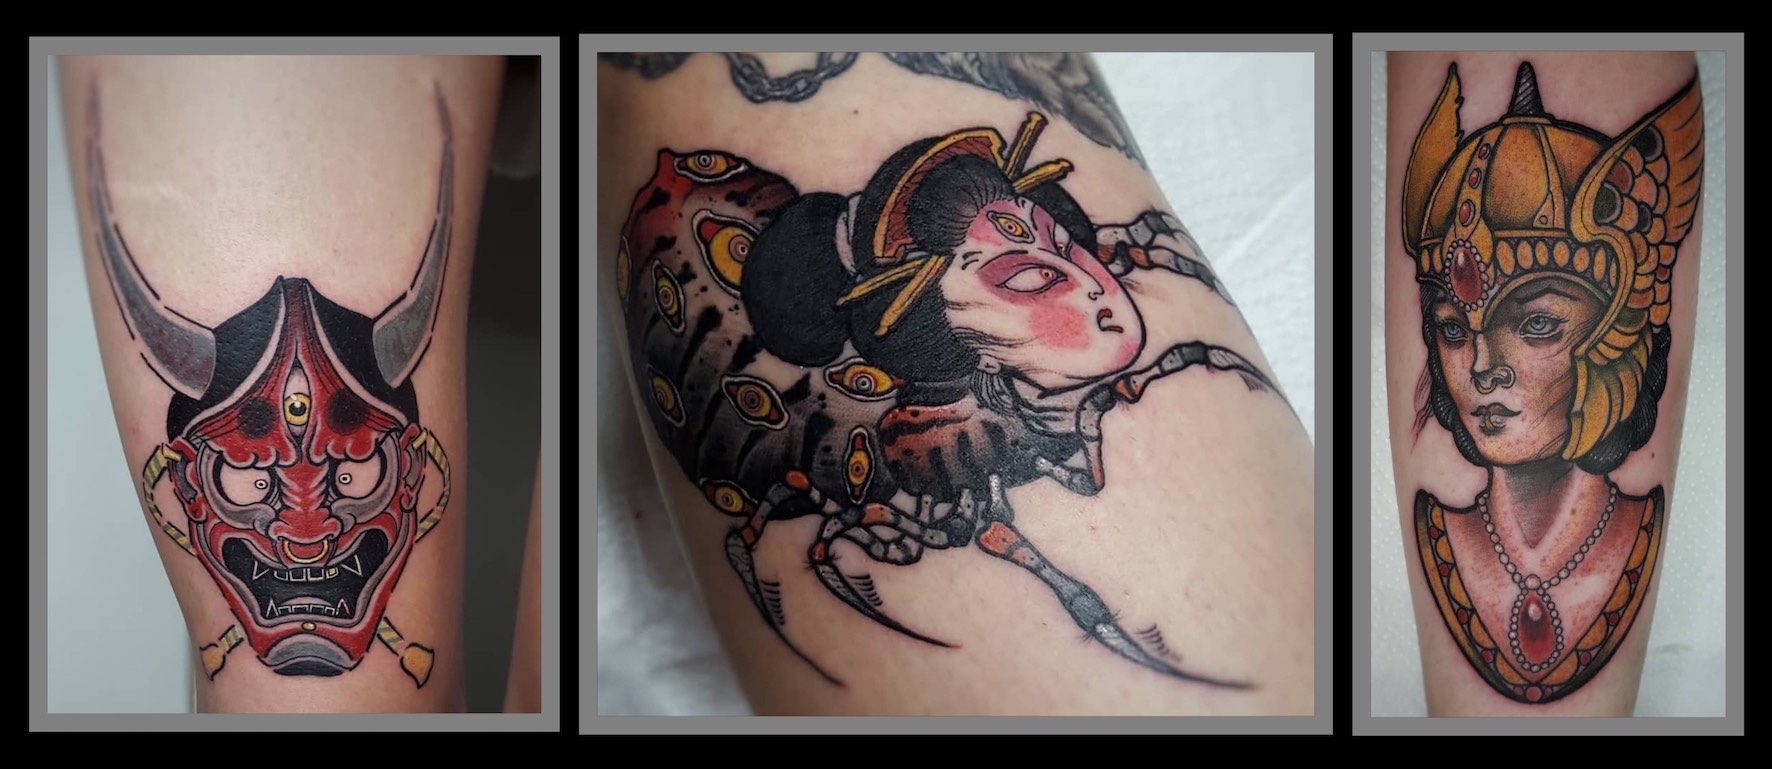 A selection of tattoo work done by Daniel Forster